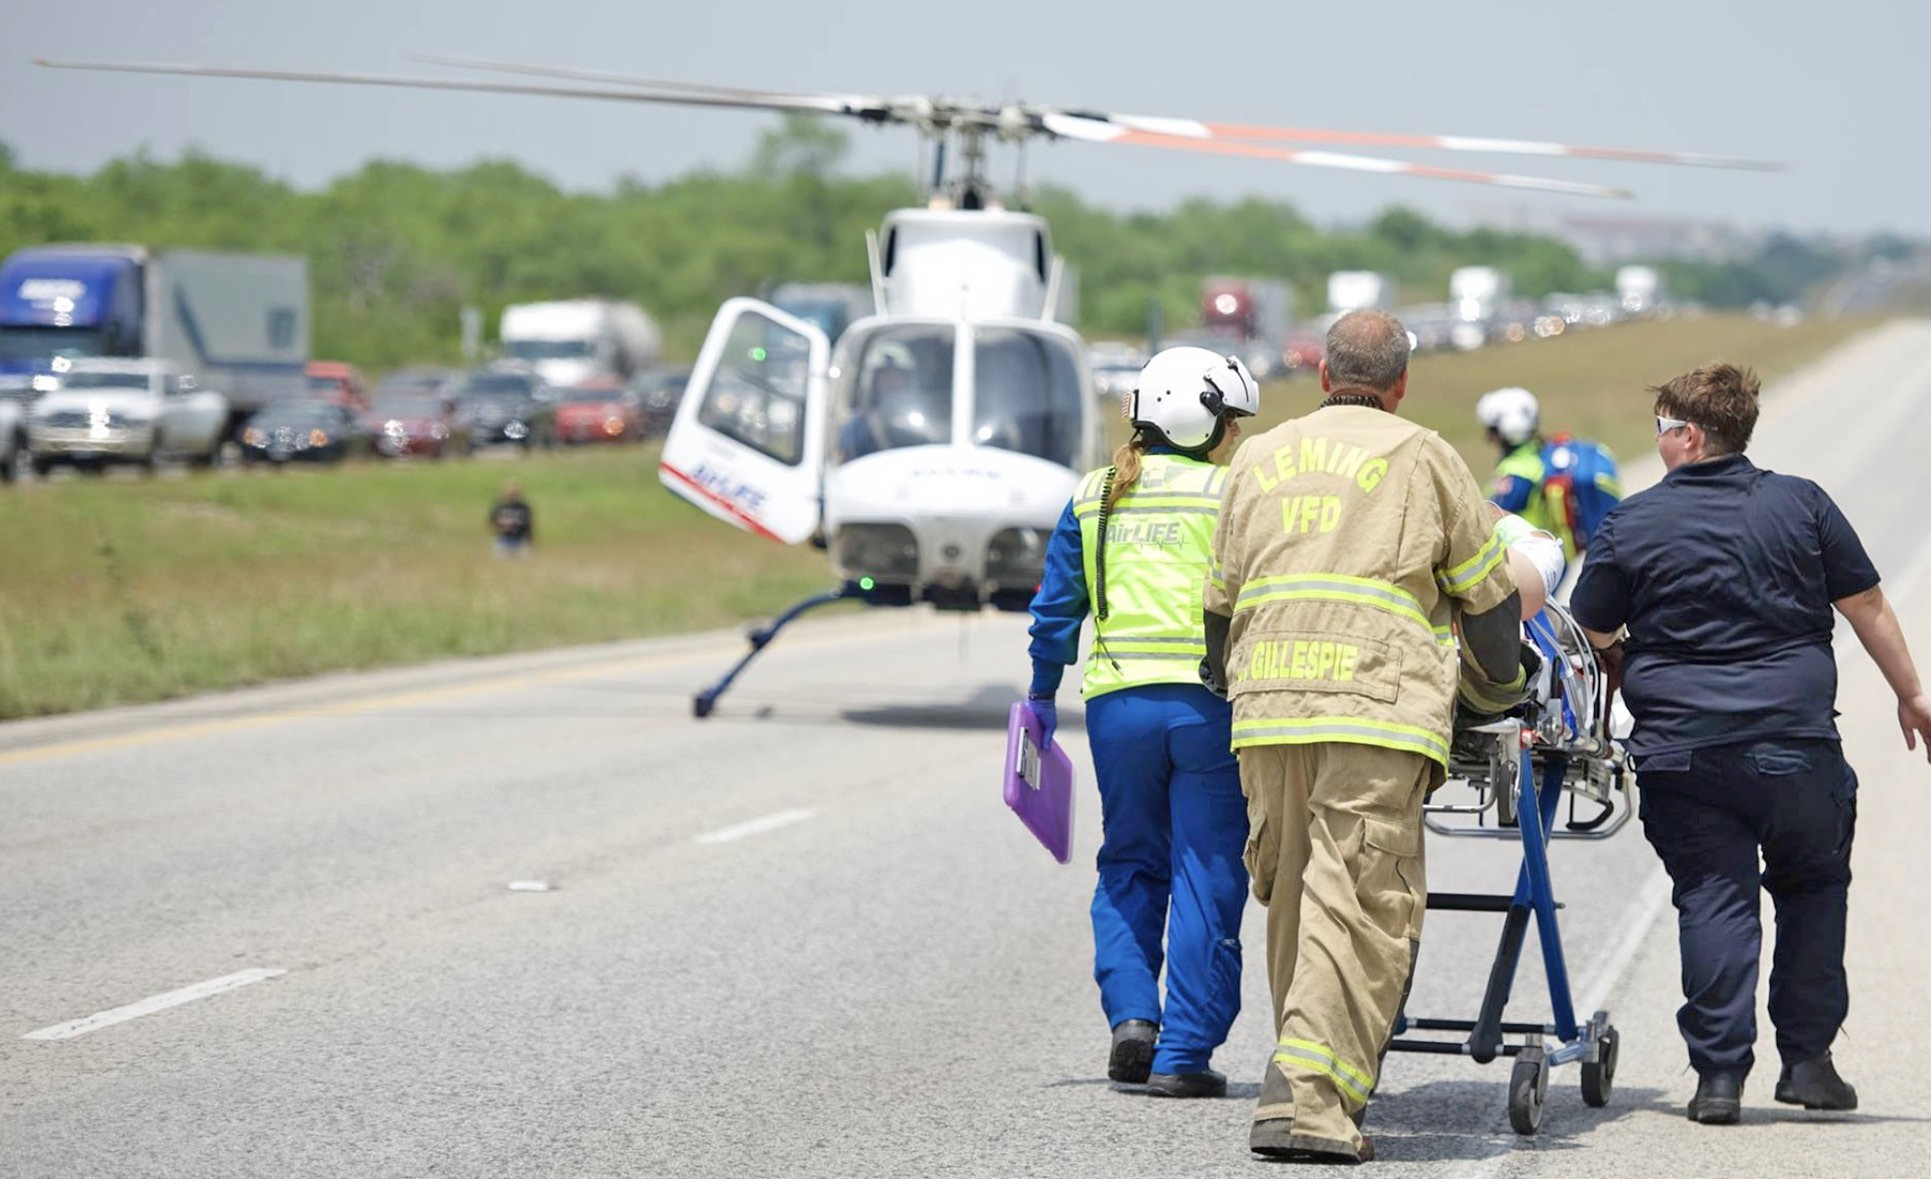 Atascosa EMS, Leming Volunteer Fire Department, DPS, Atascosa County Sheriff's Officers and AirLife responded to a one vehicle rollover on May 1. The accident occurred on IH-37, near mile marker 113. Multiple victims were transported to STRMC in Jourdanton and one went to San Antonio via AirLife.